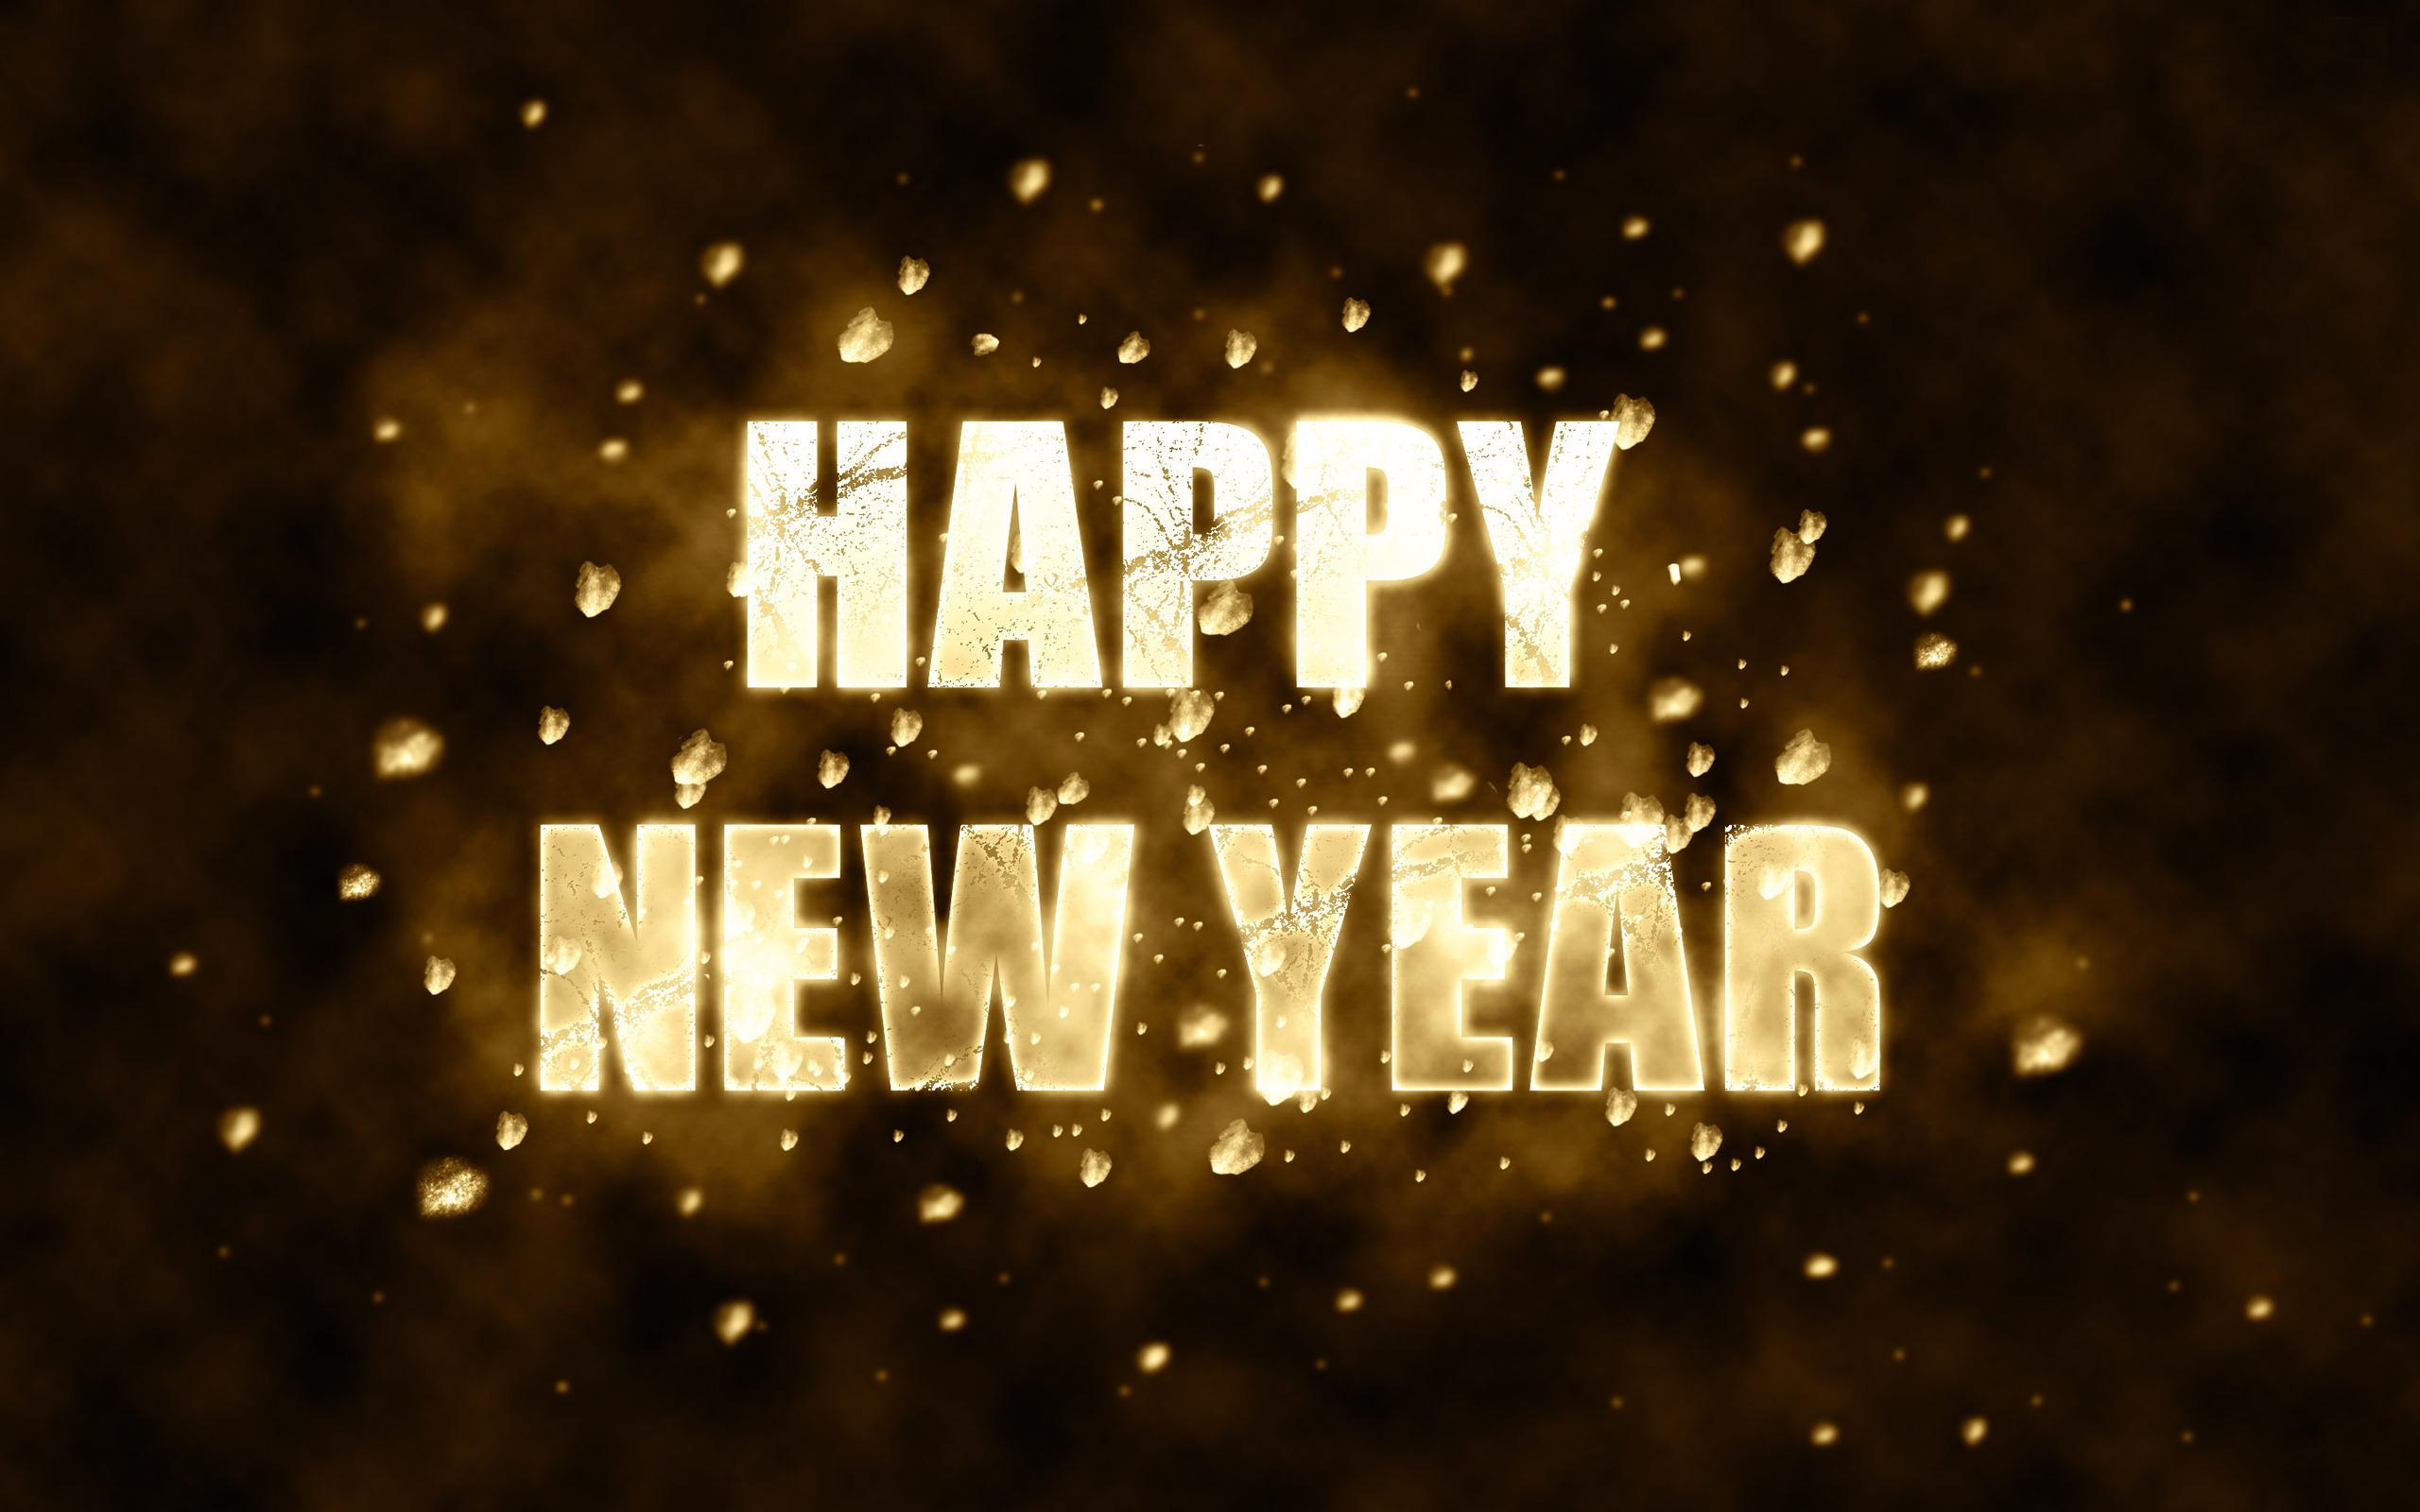 Happy New Year Wishes And New Year's Messages